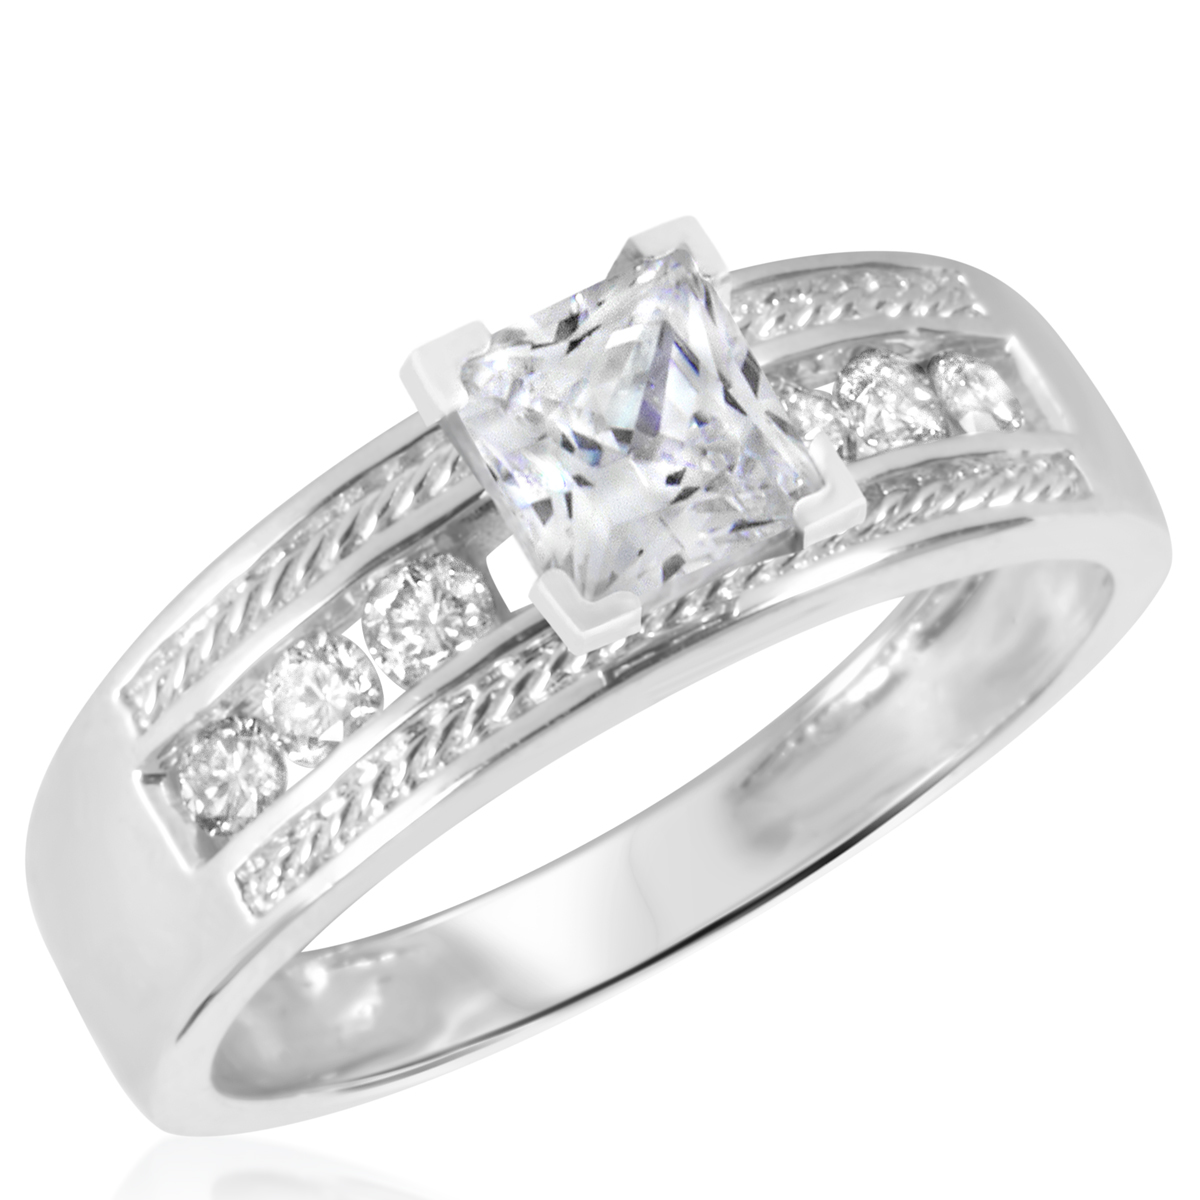 1 1/4 CT. T.W. Diamond Ladies Engagement Ring 14K White Gold